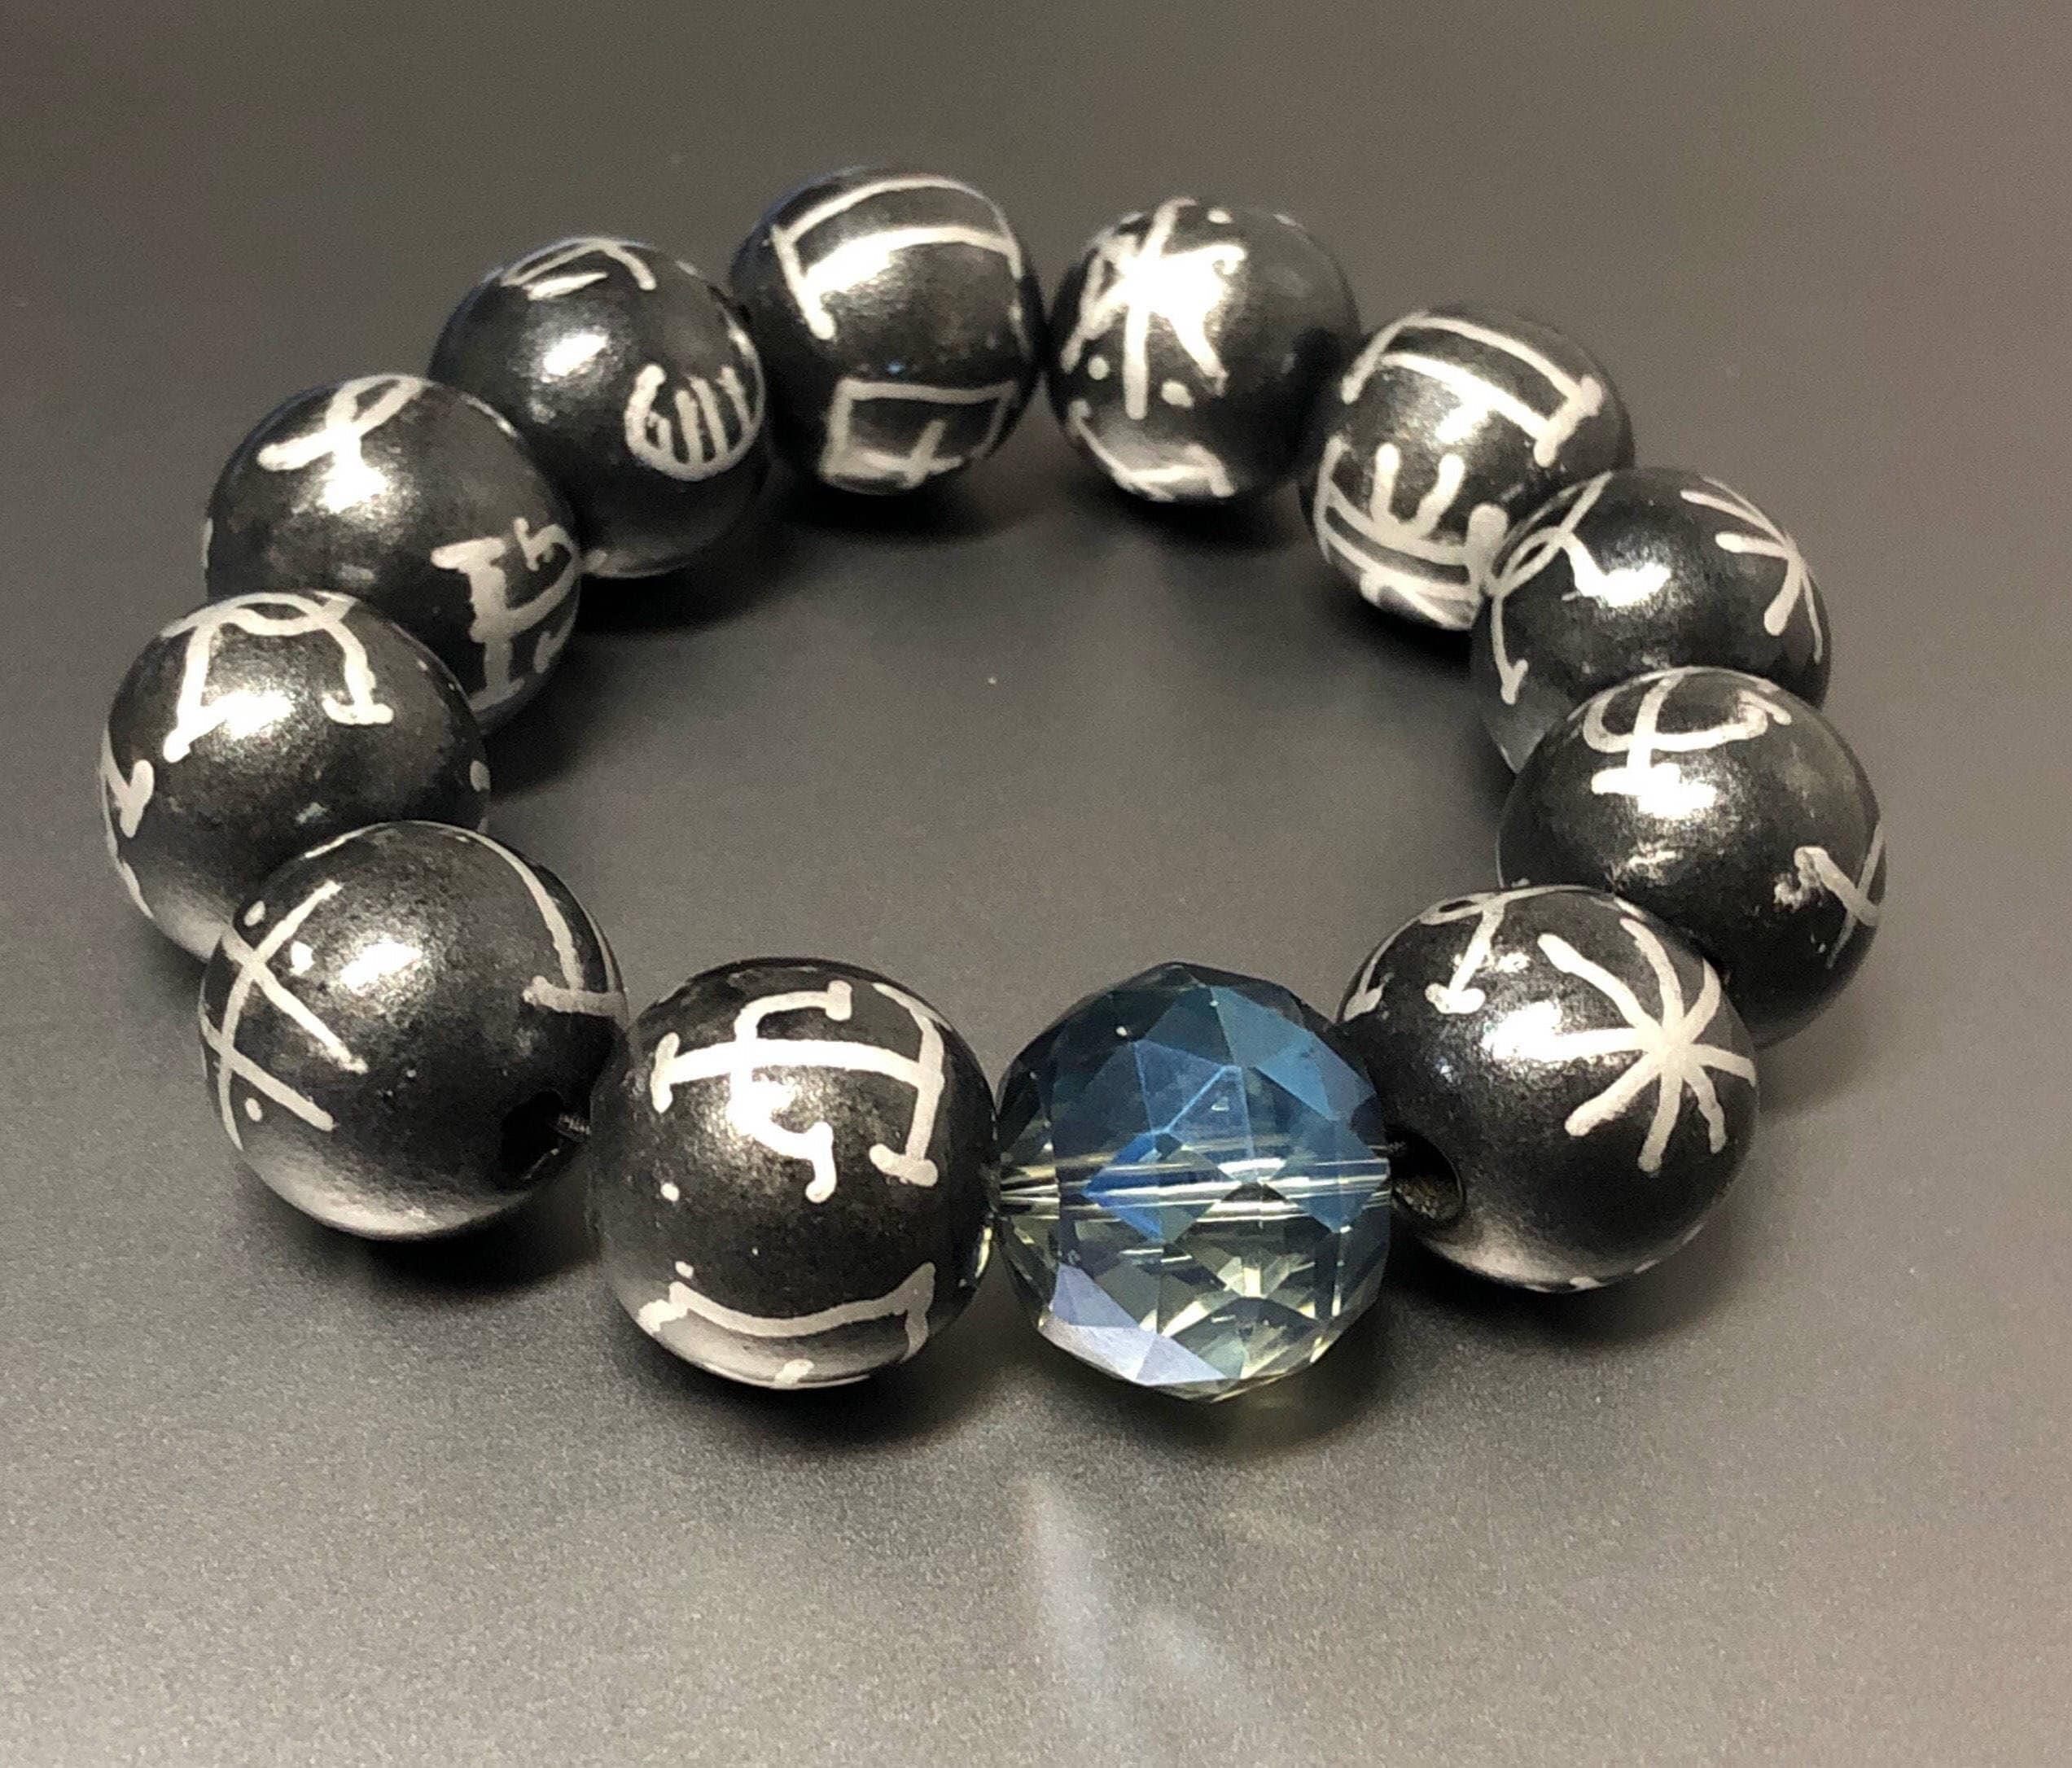 overstock mens on shipping s wide orders free adjustable black product beads bead bracelet natural lava watches over inches men jewelry polished healing stone bracelets